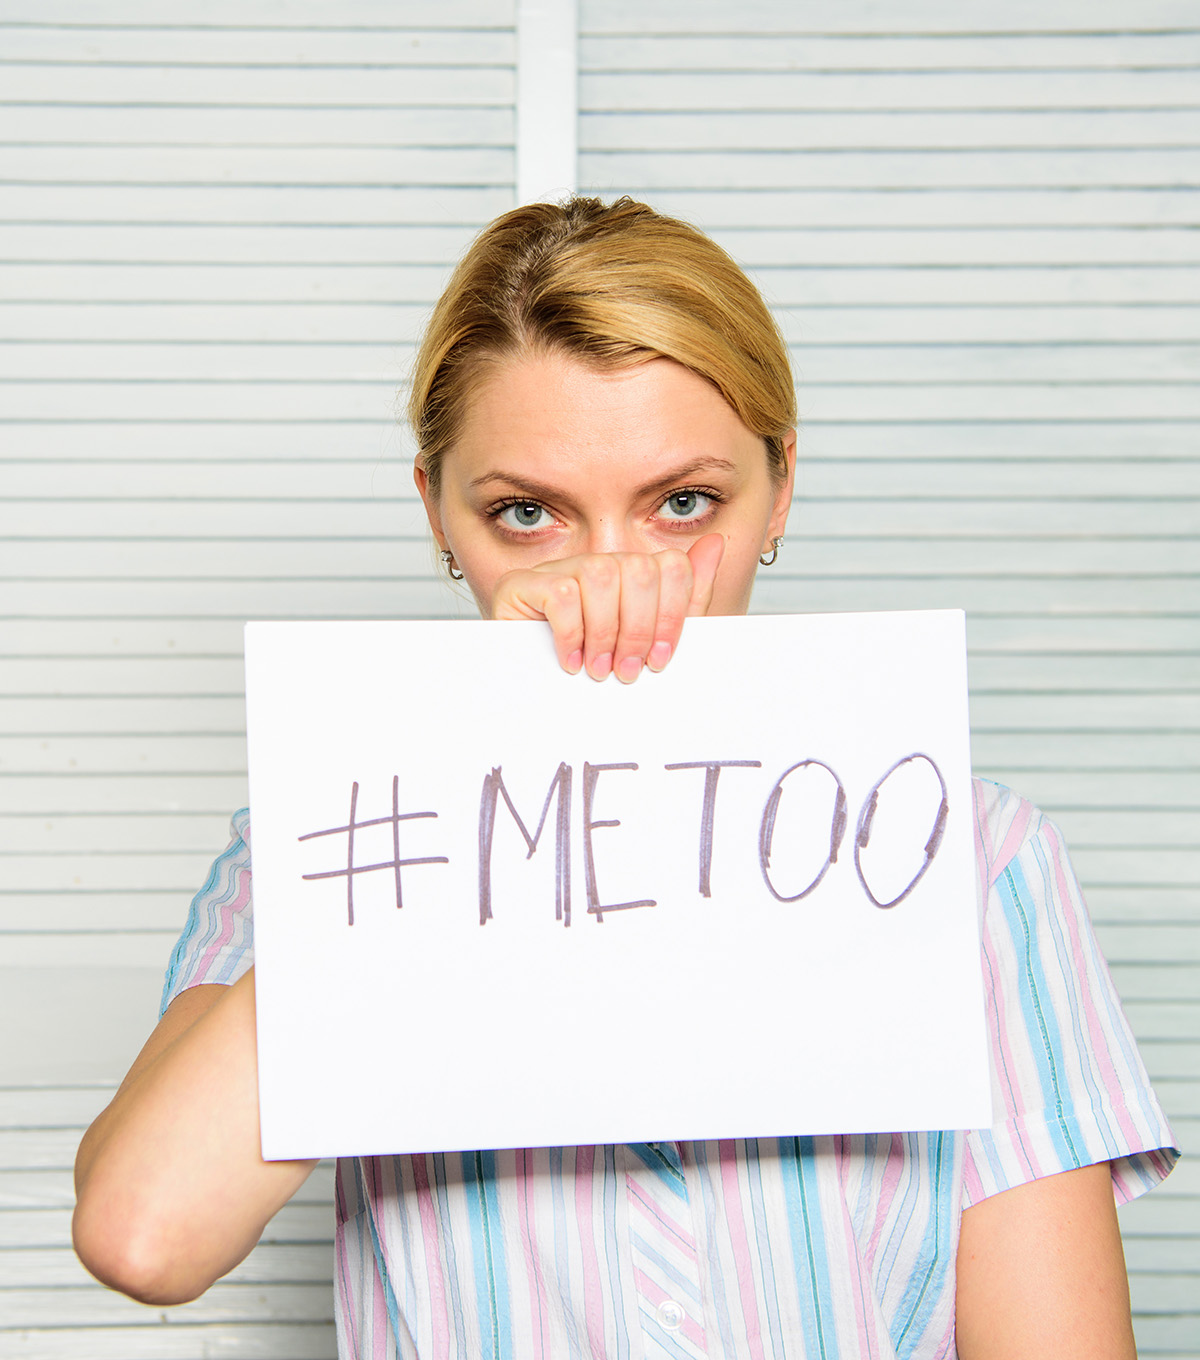 French Metoo Milestone Court Orders Dentist To Pay Damages For Sexual Harassment